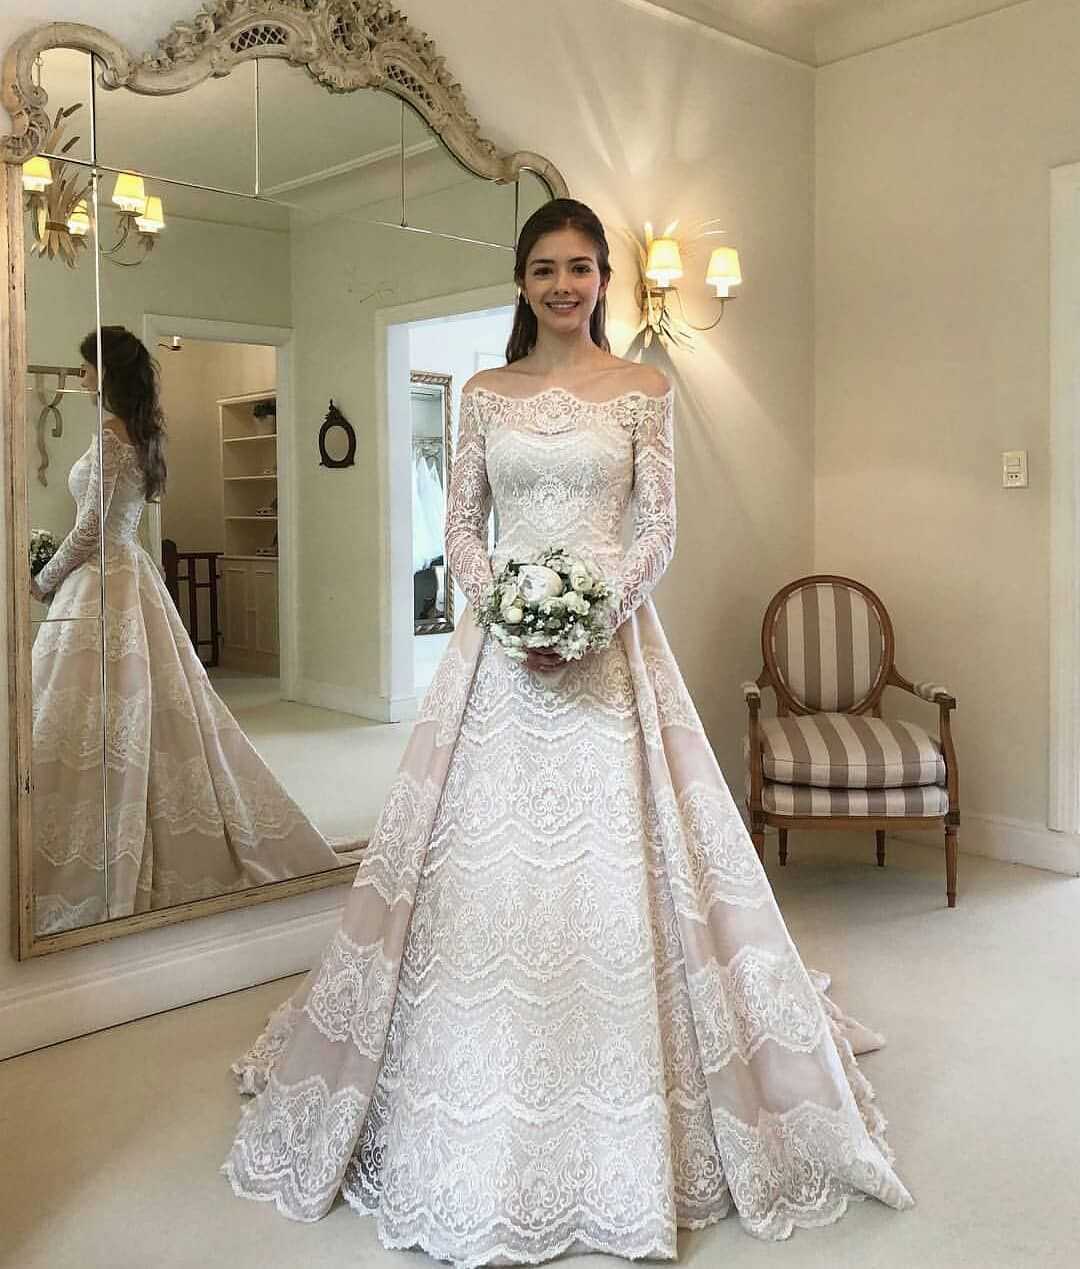 Wedding Gowns For Less: Inspired Wedding Dresses And Recreations Of Couture